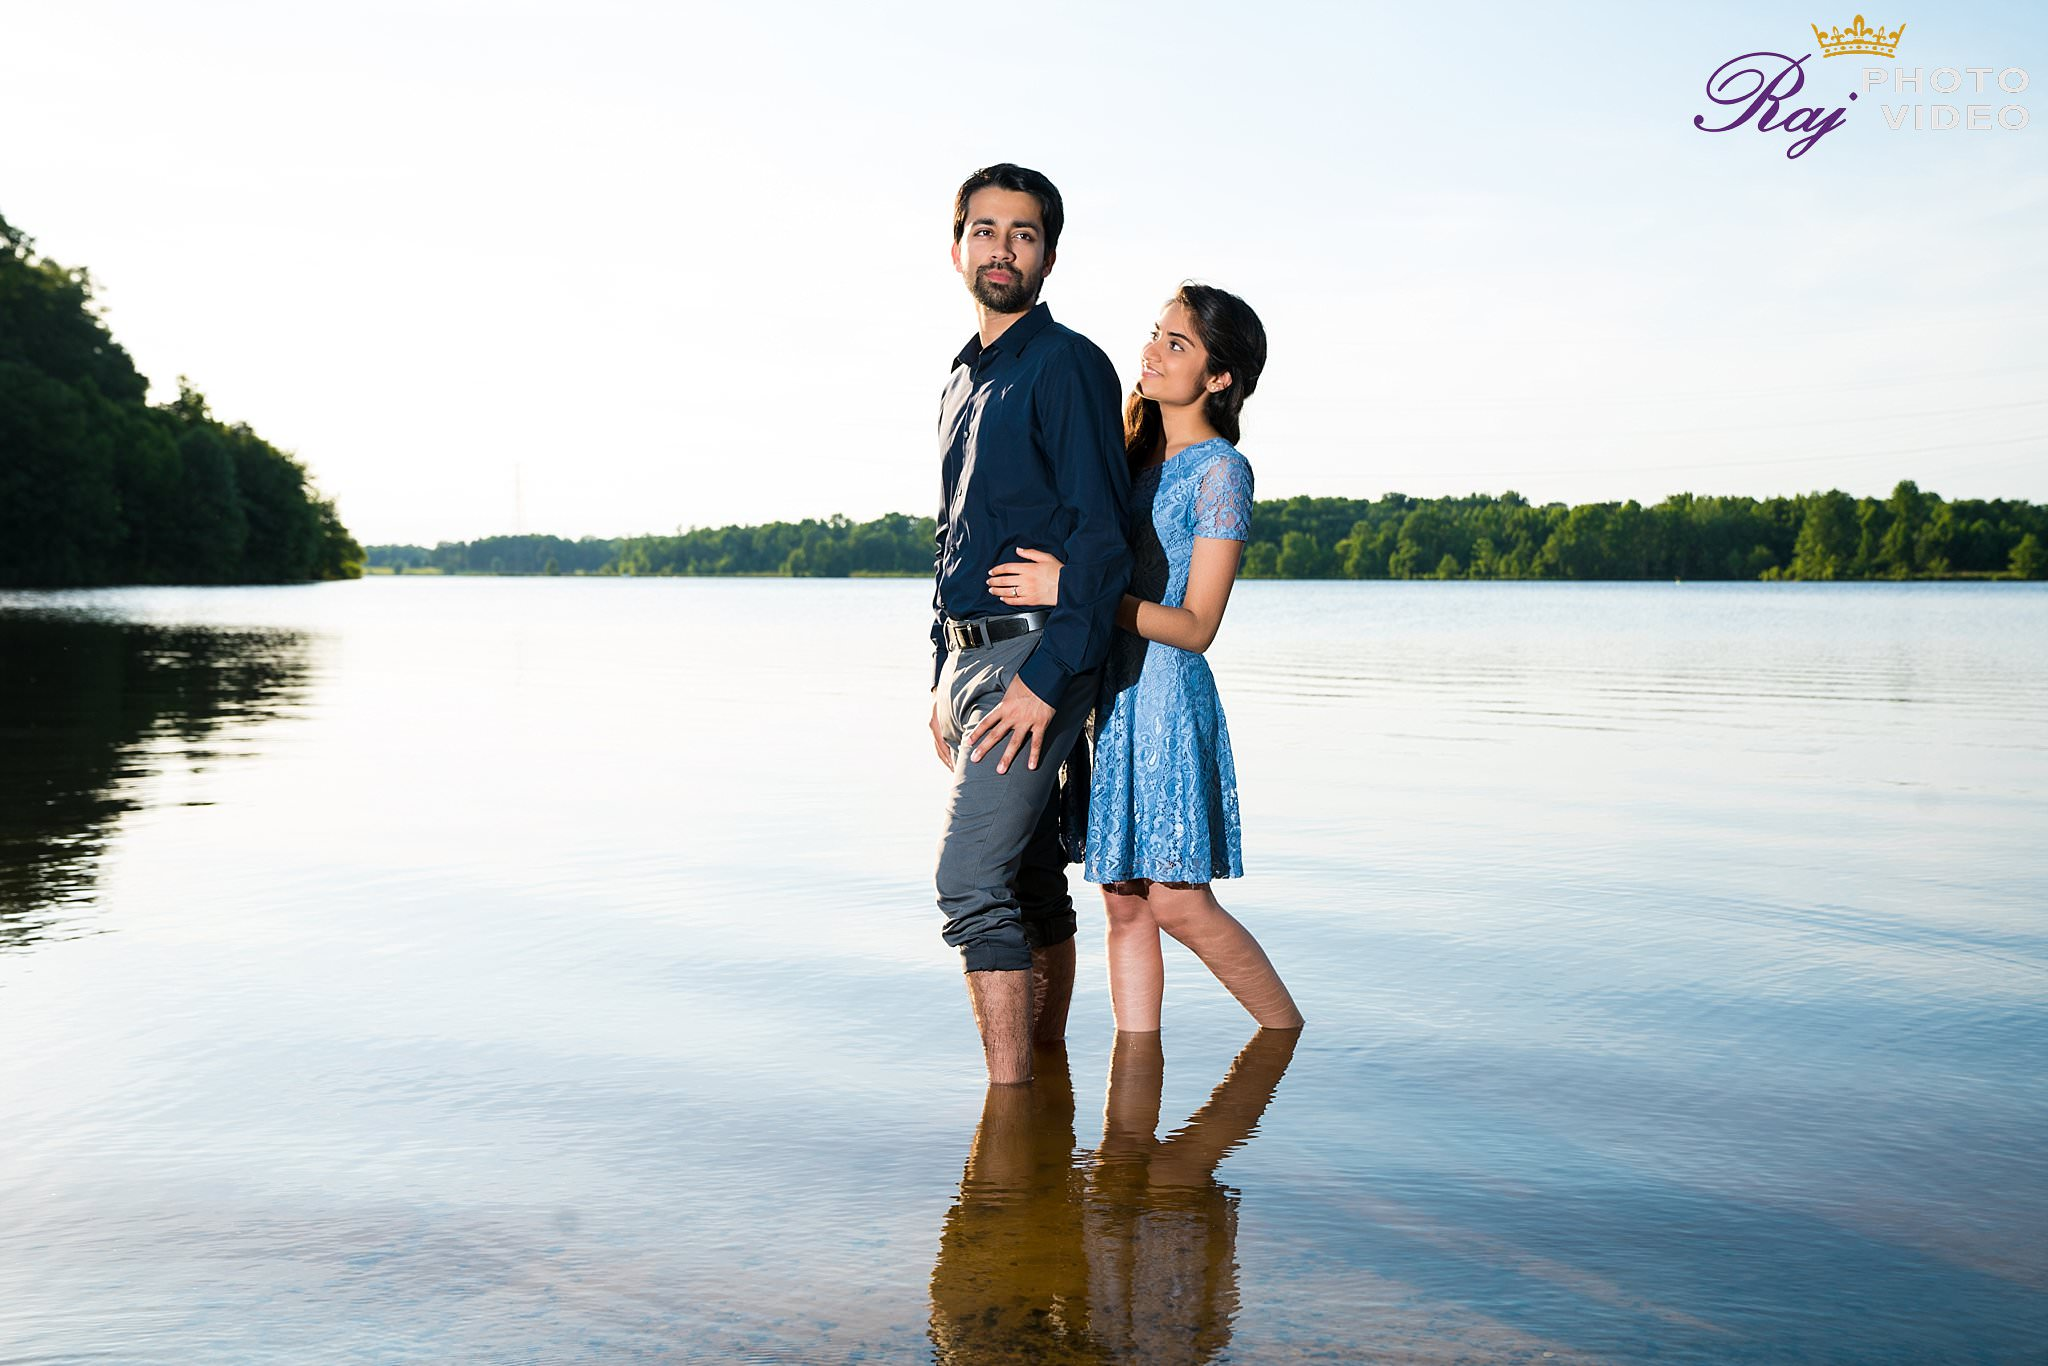 Mercer-County-Park-Engagement-Shoot-Shaili-Rahul-6_Raj_Photo_Video.jpg